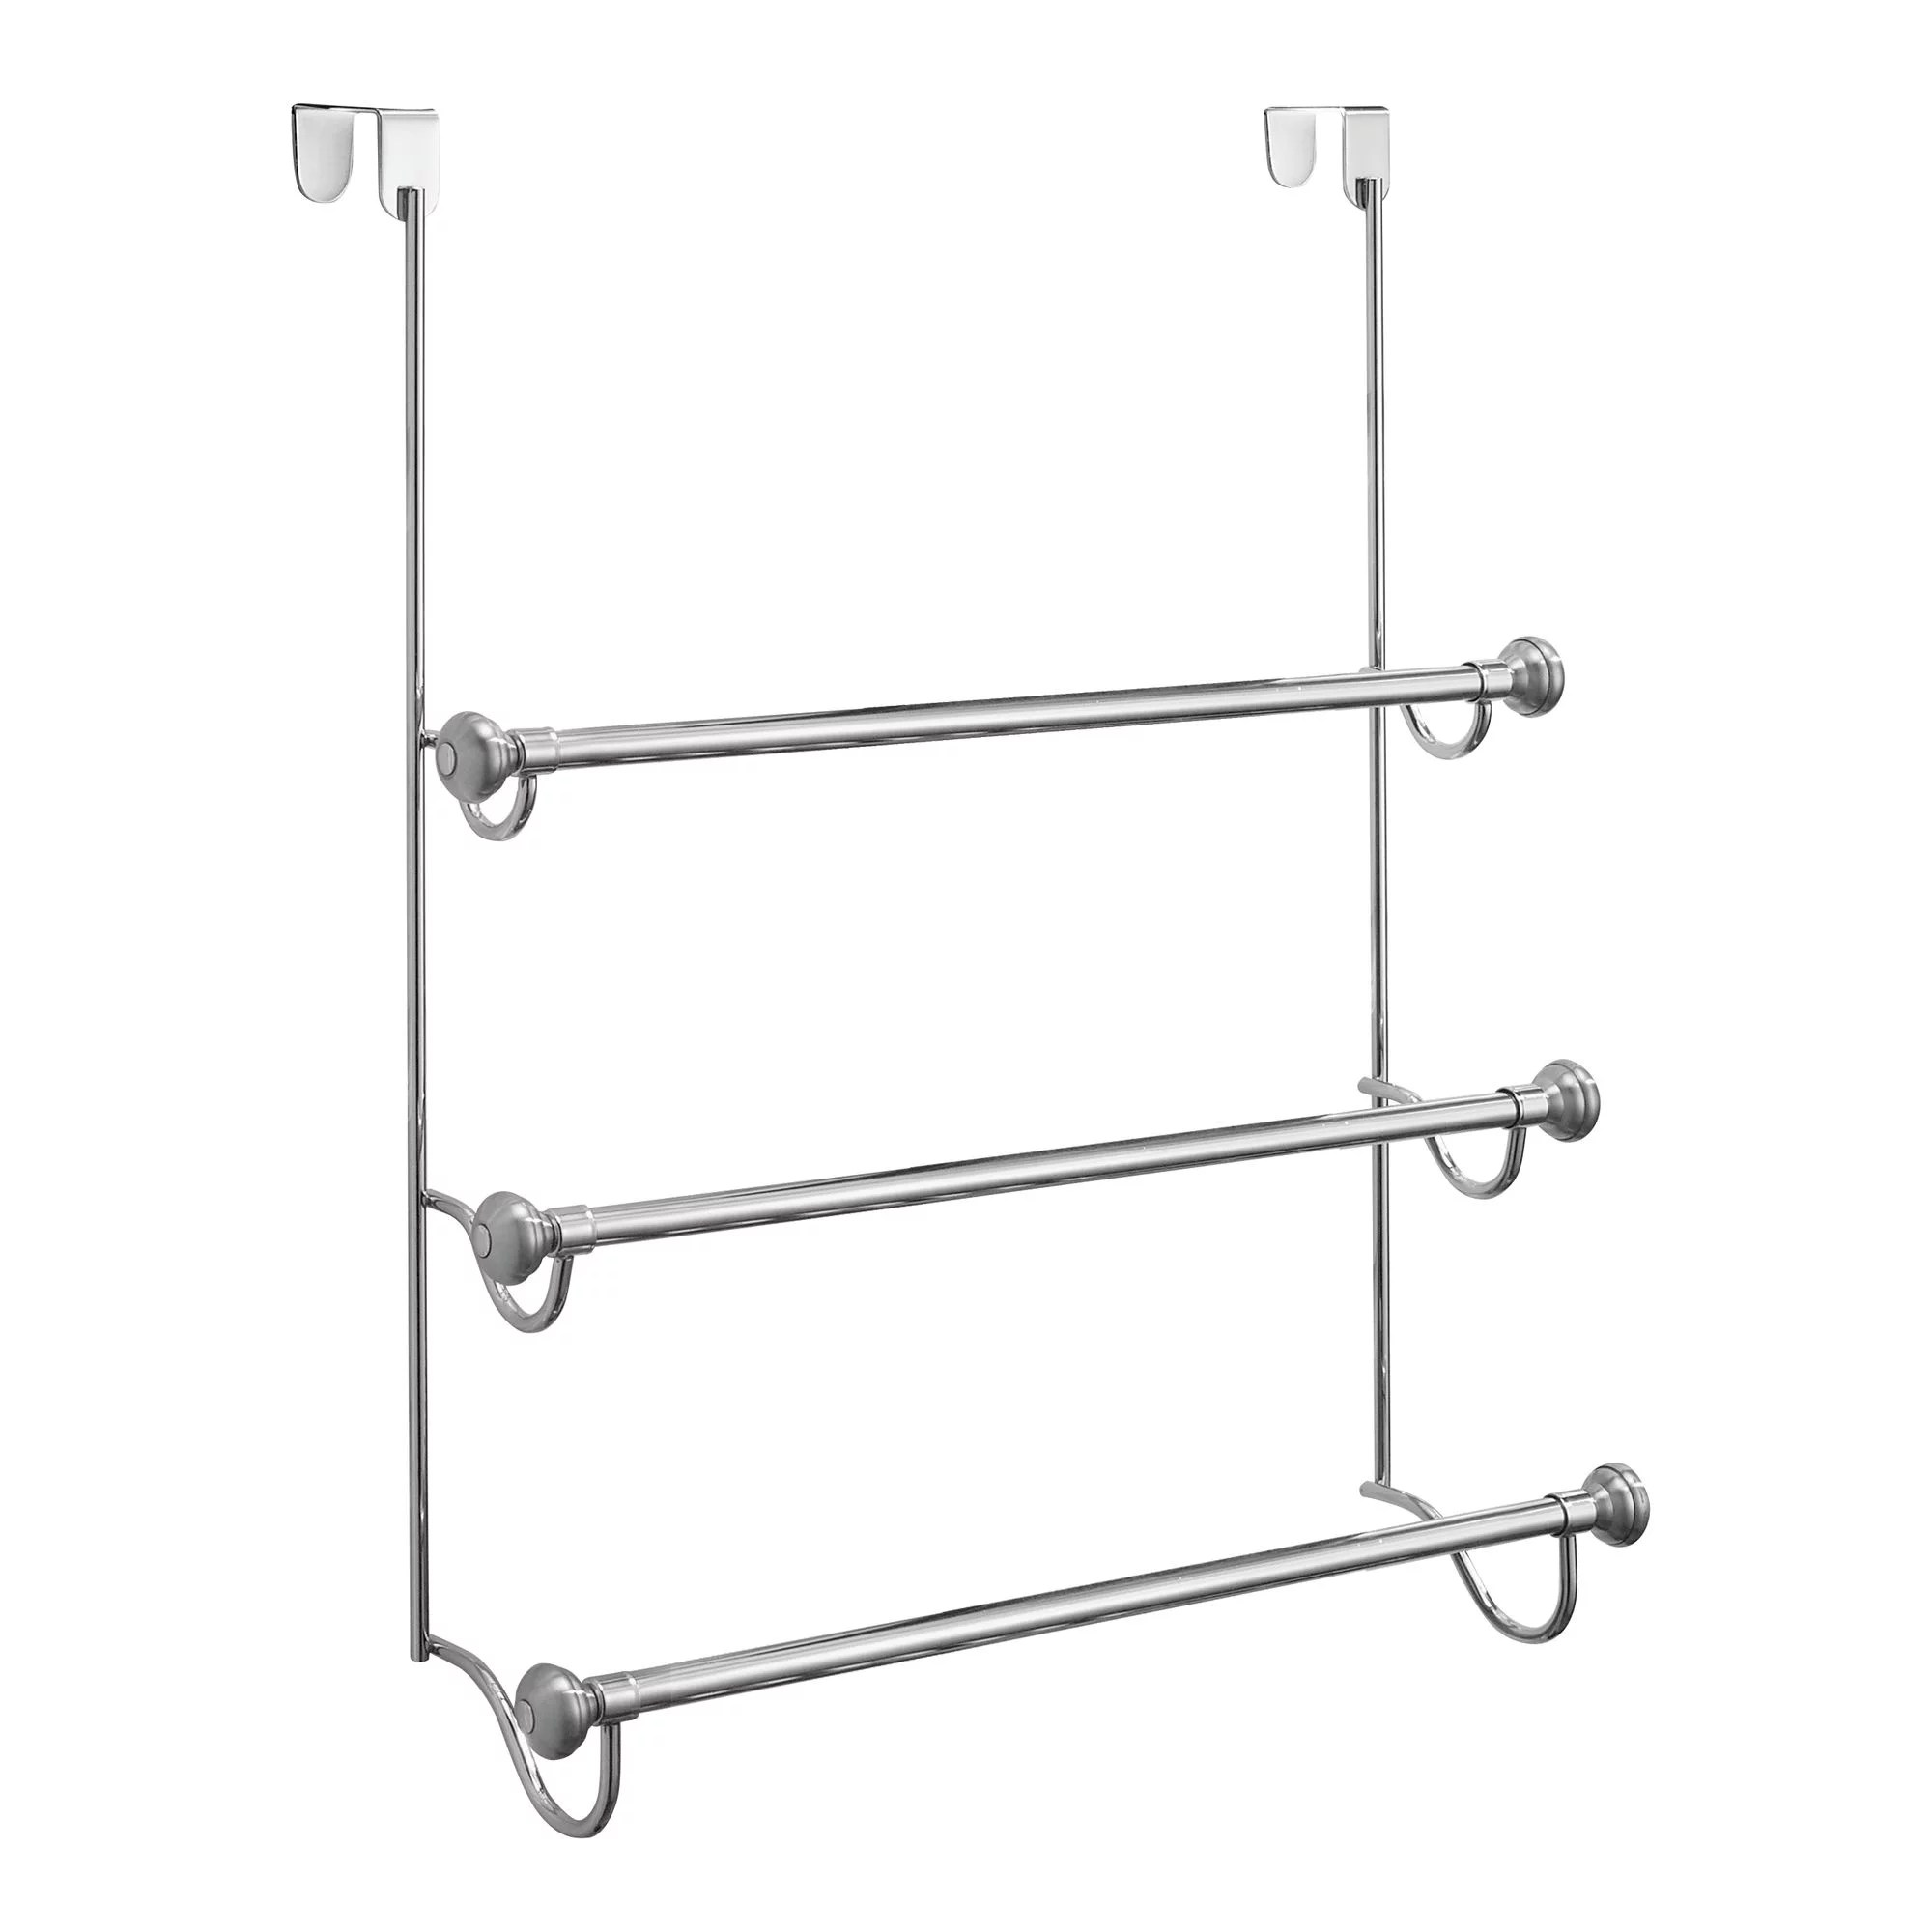 InterDesign York Over the Shower Door Towel Rack for